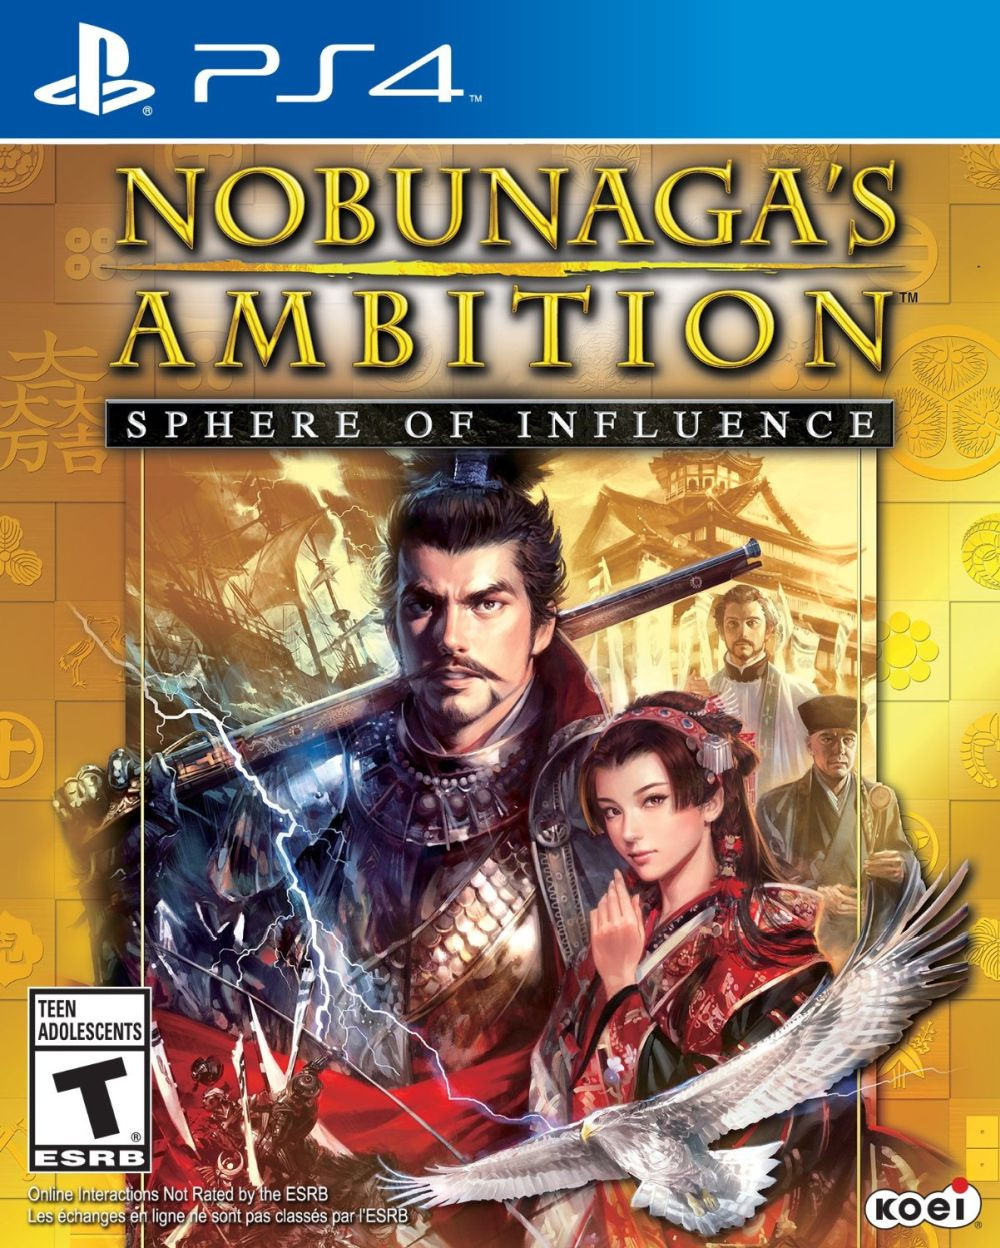 PS4 Nobunagas Ambition - Sphere of Influence